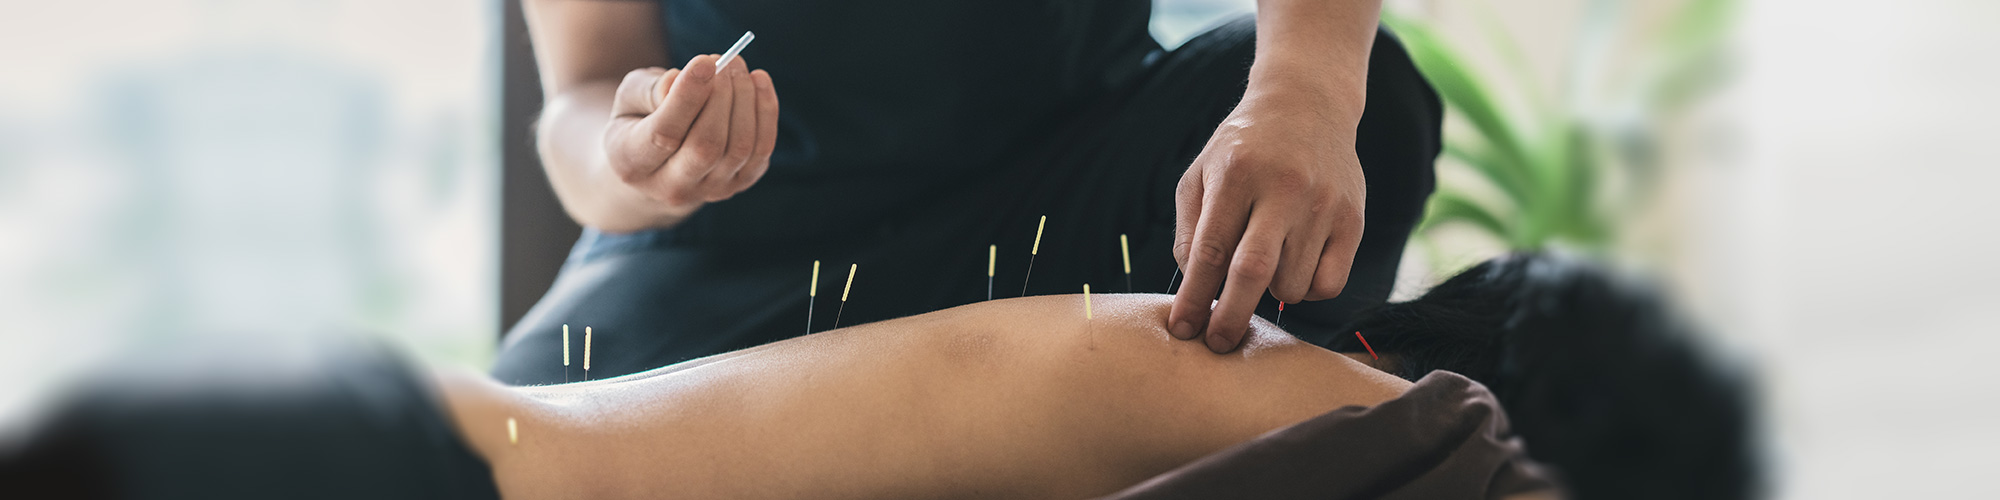 acupuncture treatment in Manchester city centre